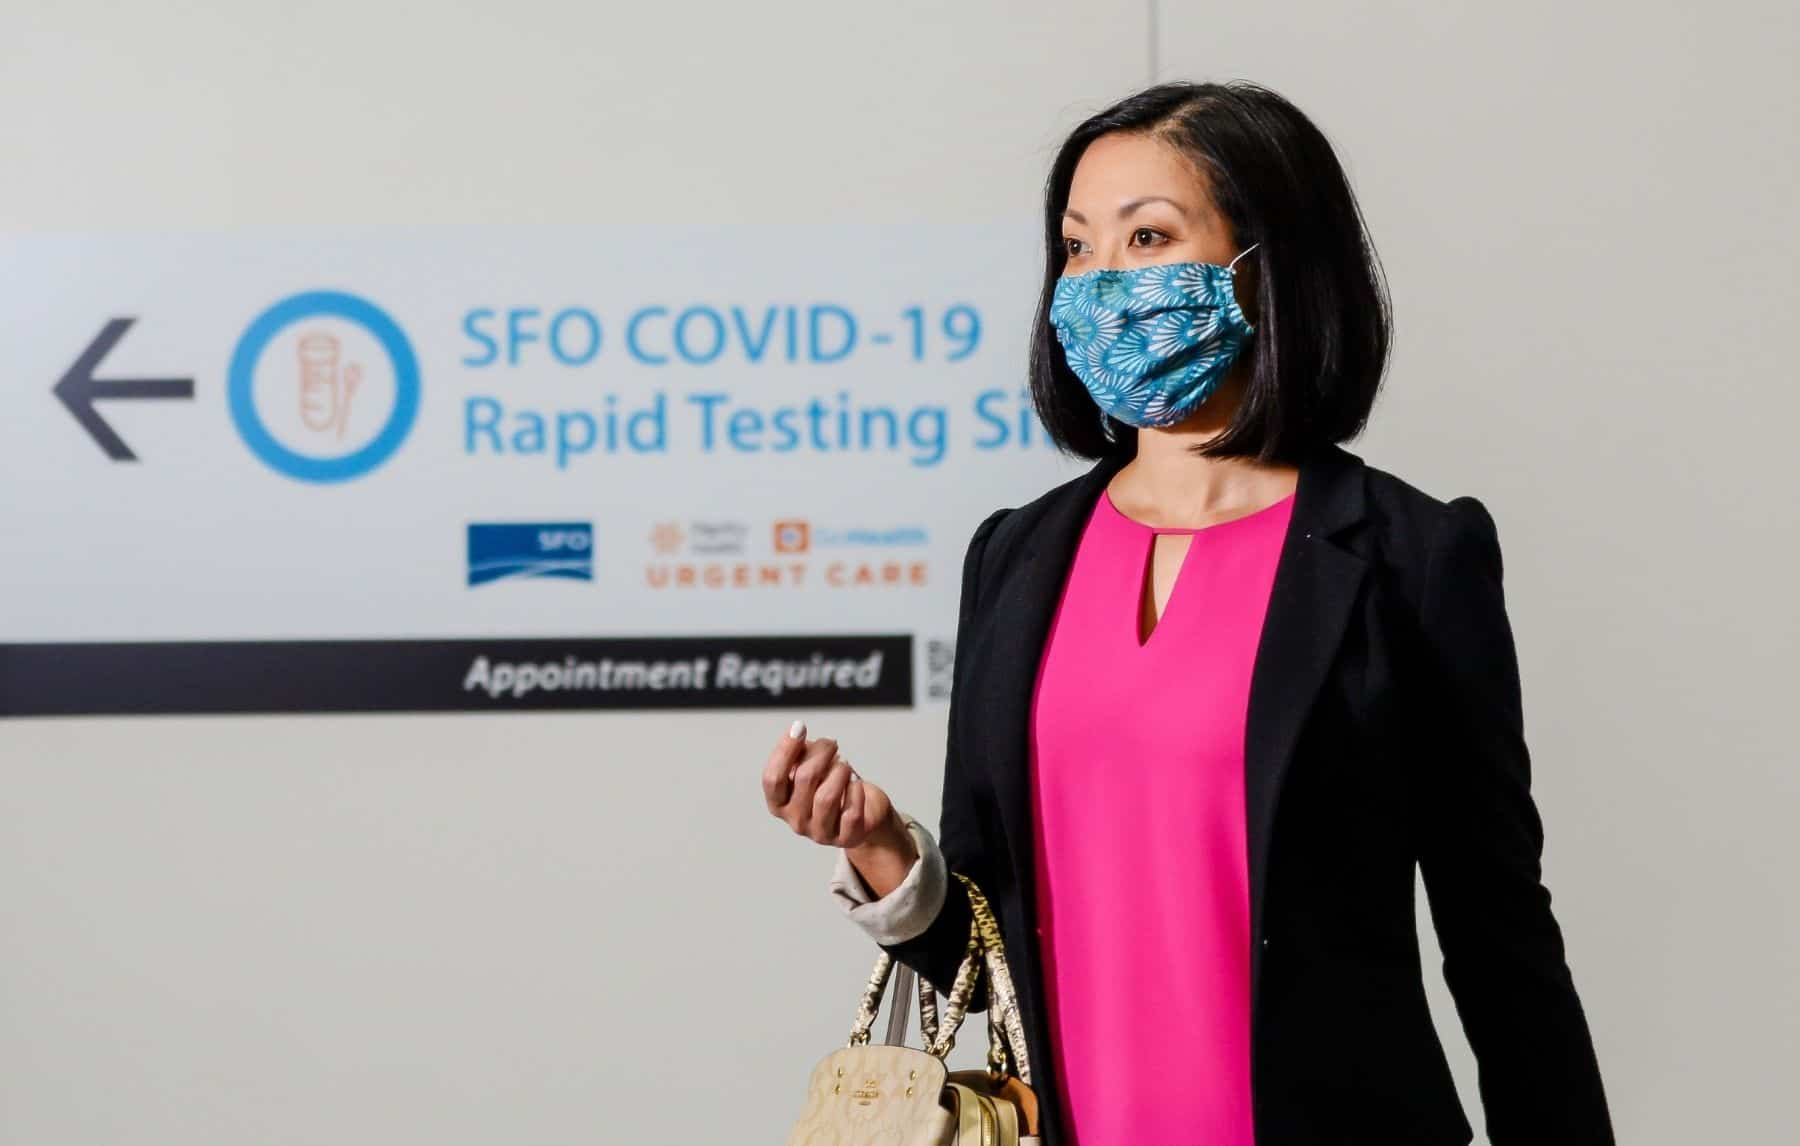 United Airlines becomes first U.S. carrier to make COVID-19 tests available to customers